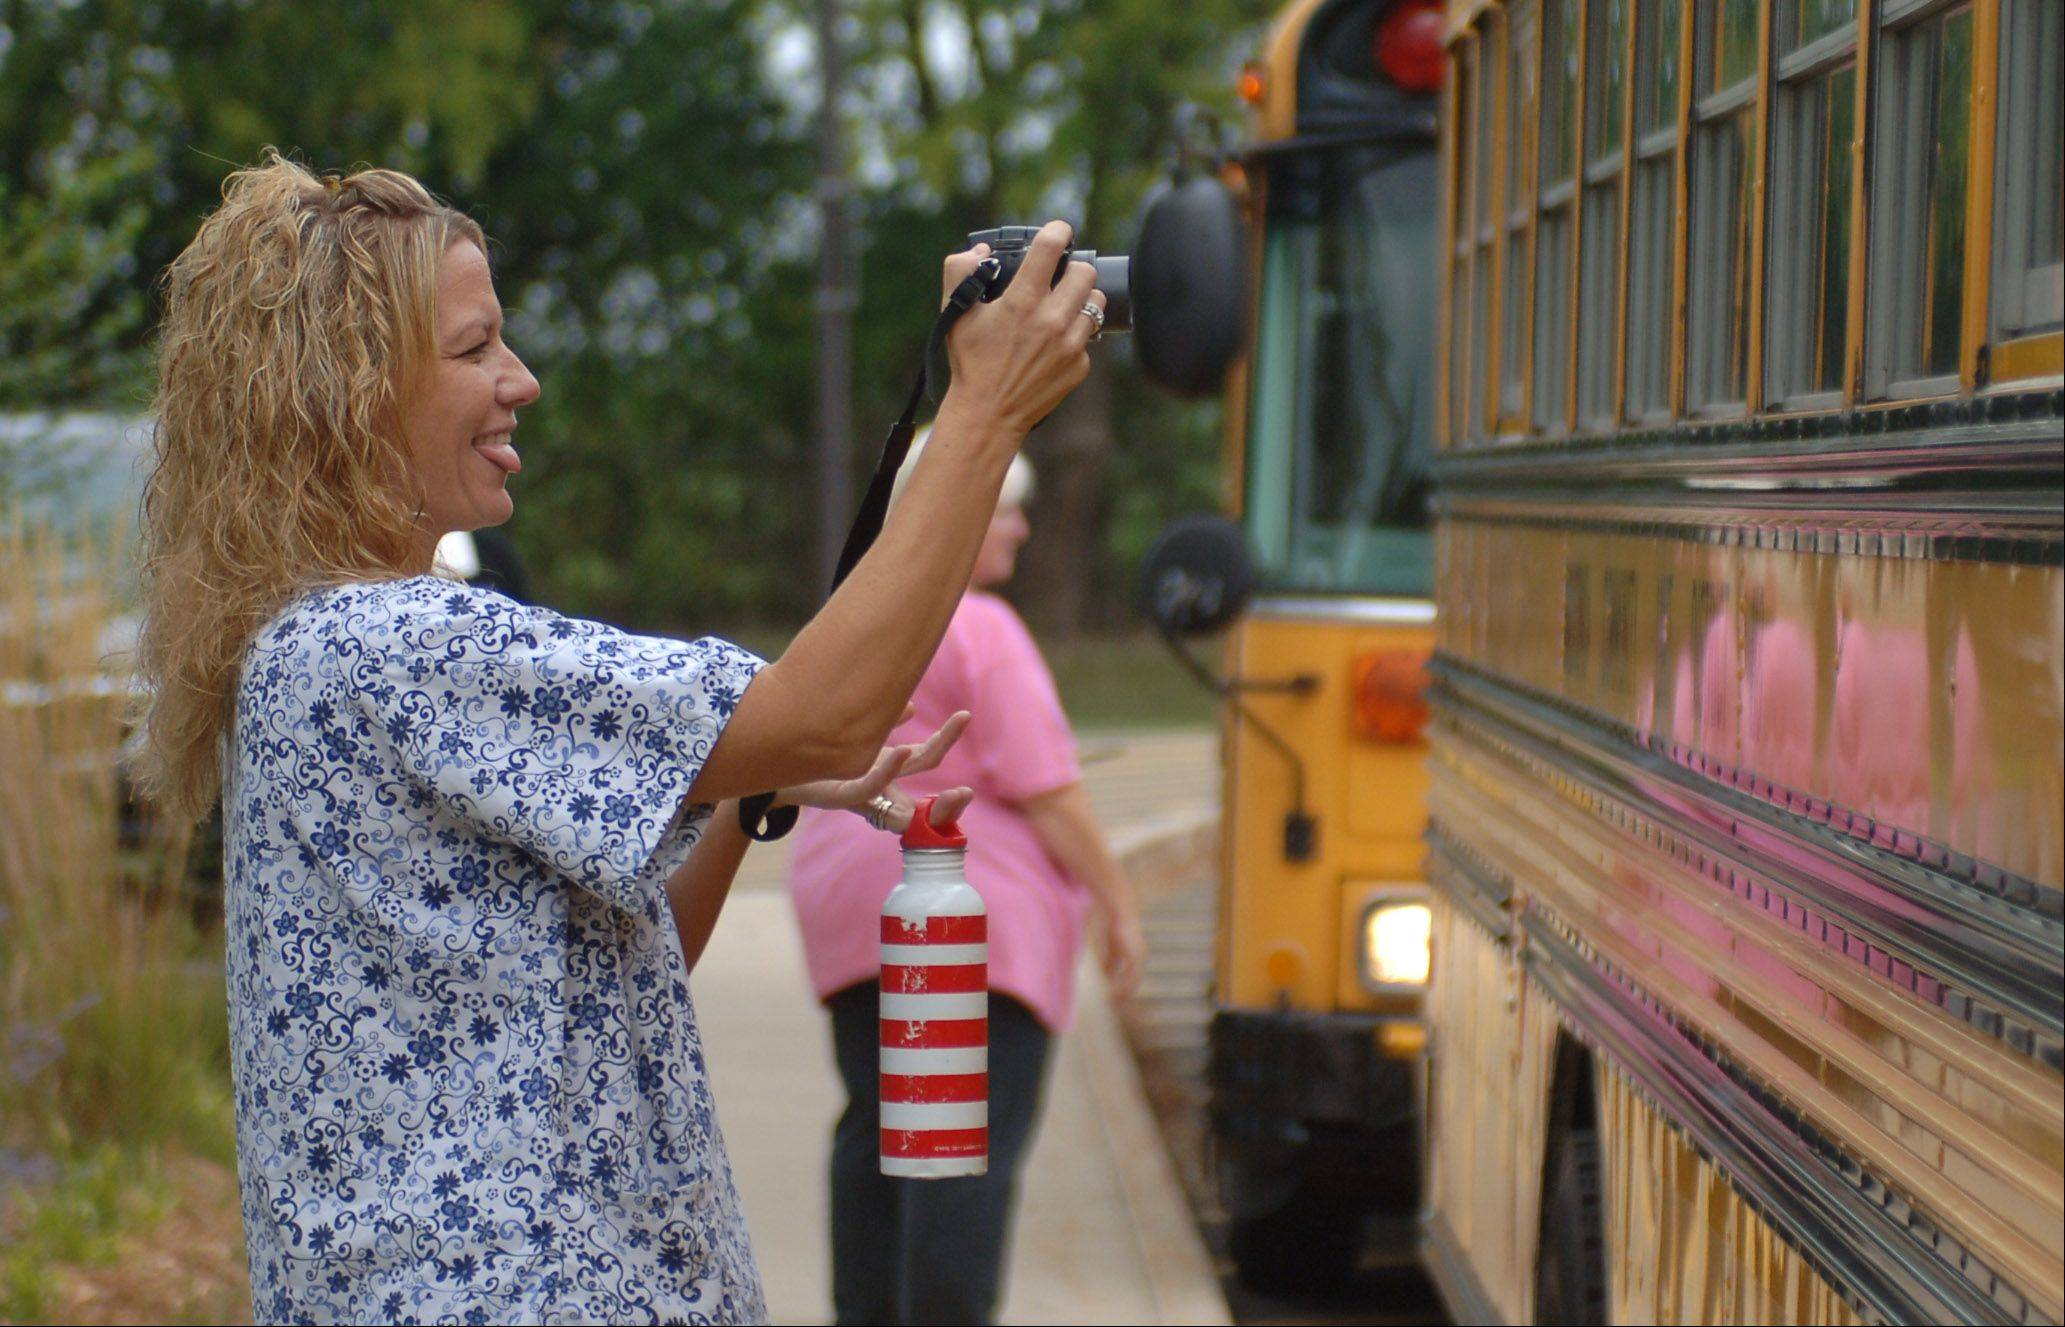 Jennifer Johnson of Lakemoor takes photos of her children as they arrive for first day of school at Robert Crown School in Wauconda Wednesday morning.